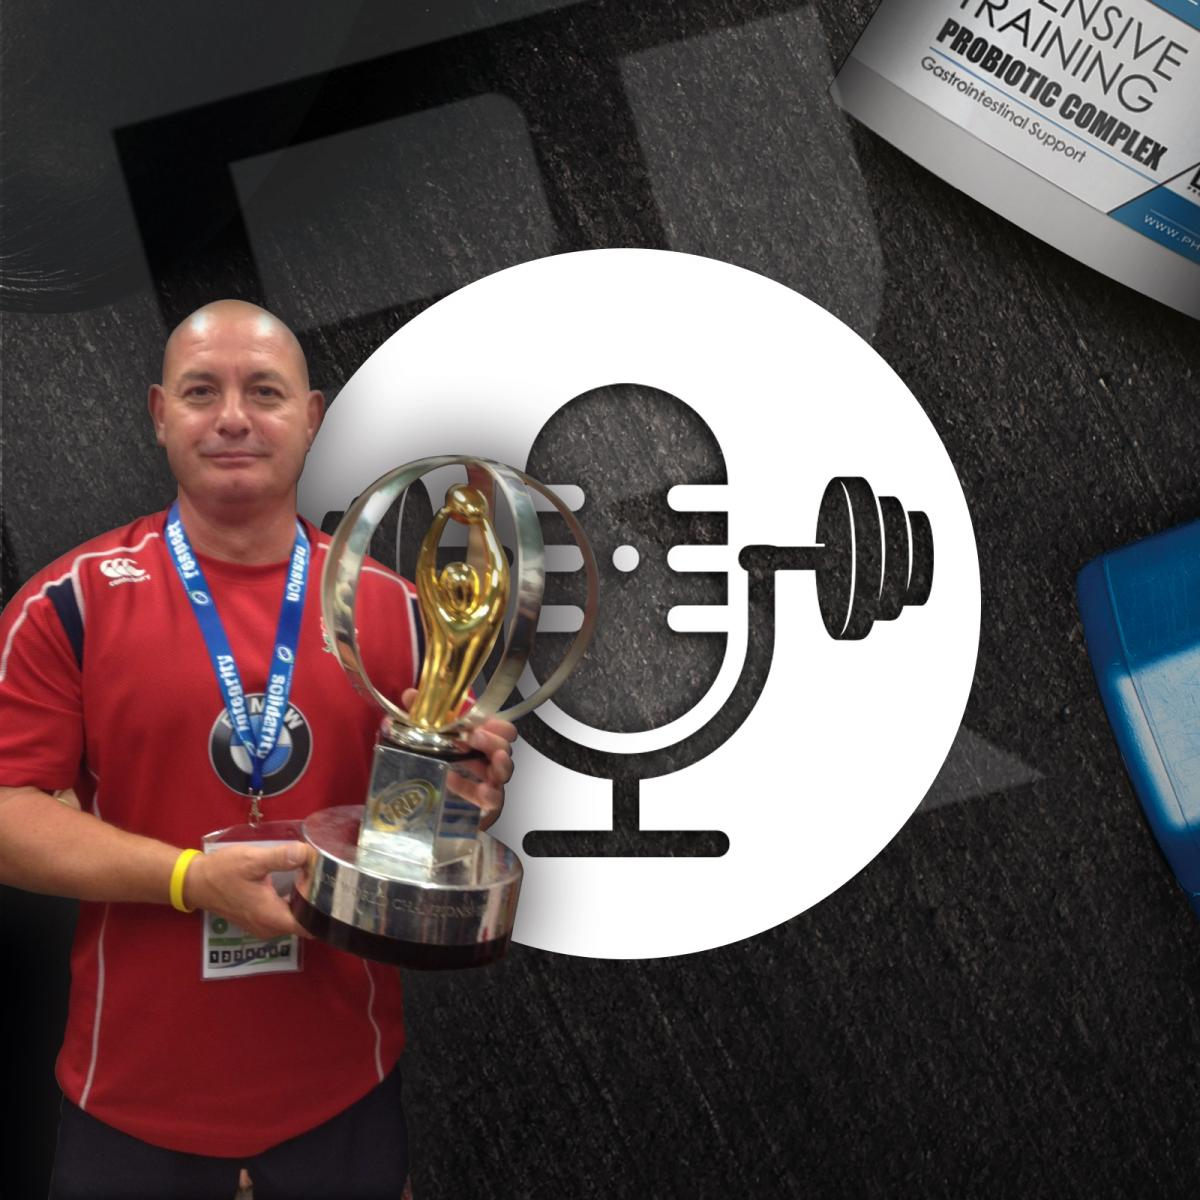 Neil Taylor - Lessons From An International Athlete and Coach - Podcast Episode